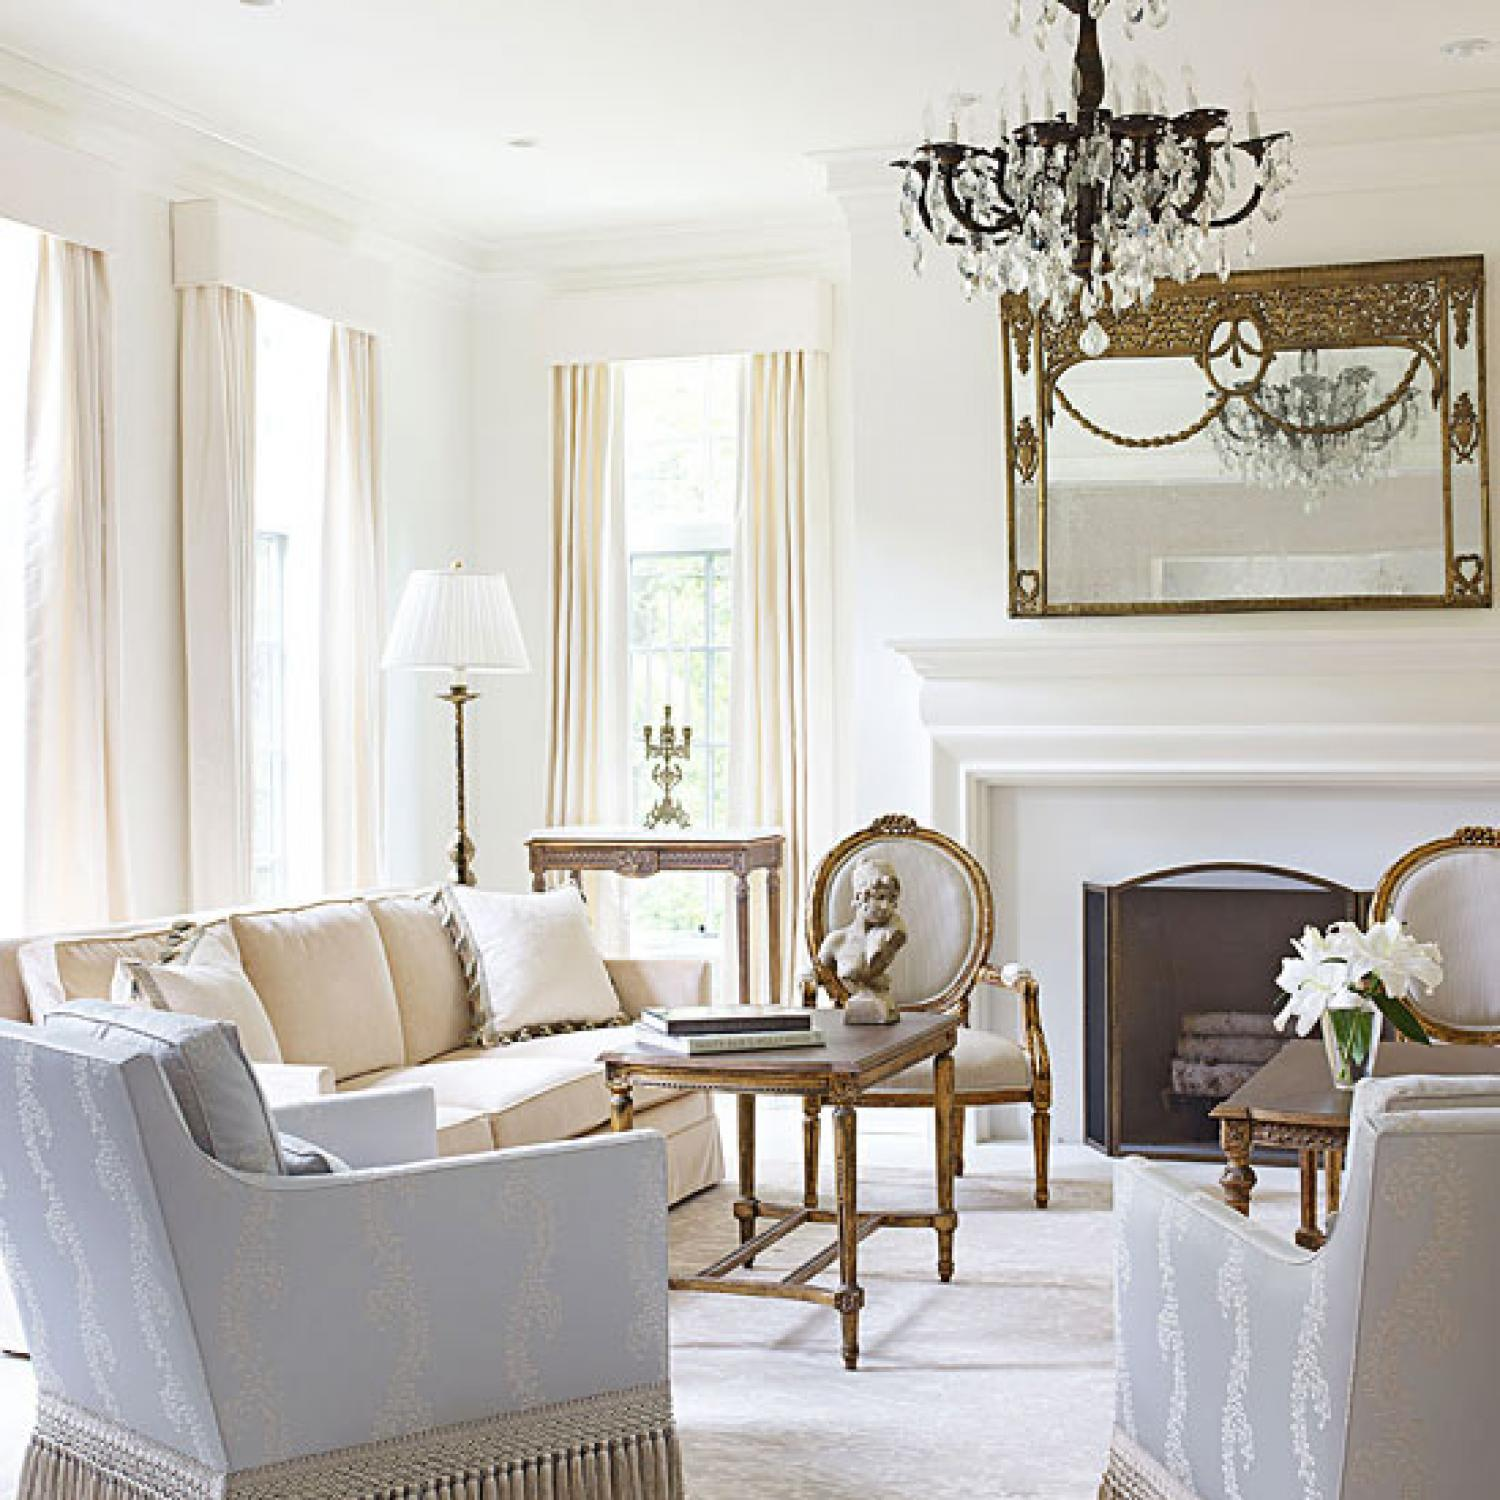 Traditional Interior Design By Ownby: Bright, White, And Inviting Family Home